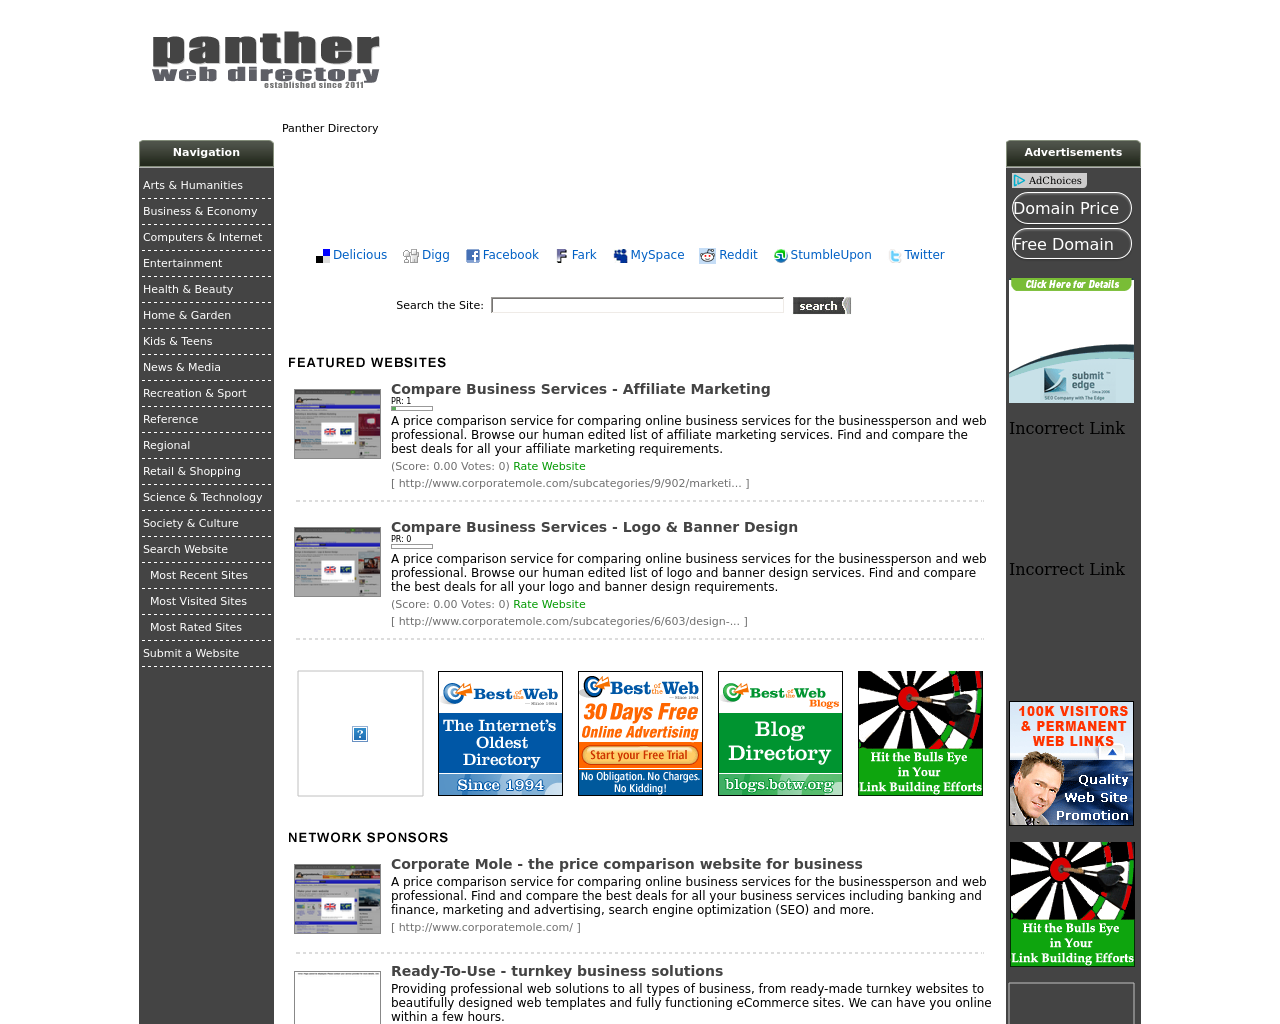 Panther-Web-Directory-Advertising-Reviews-Pricing